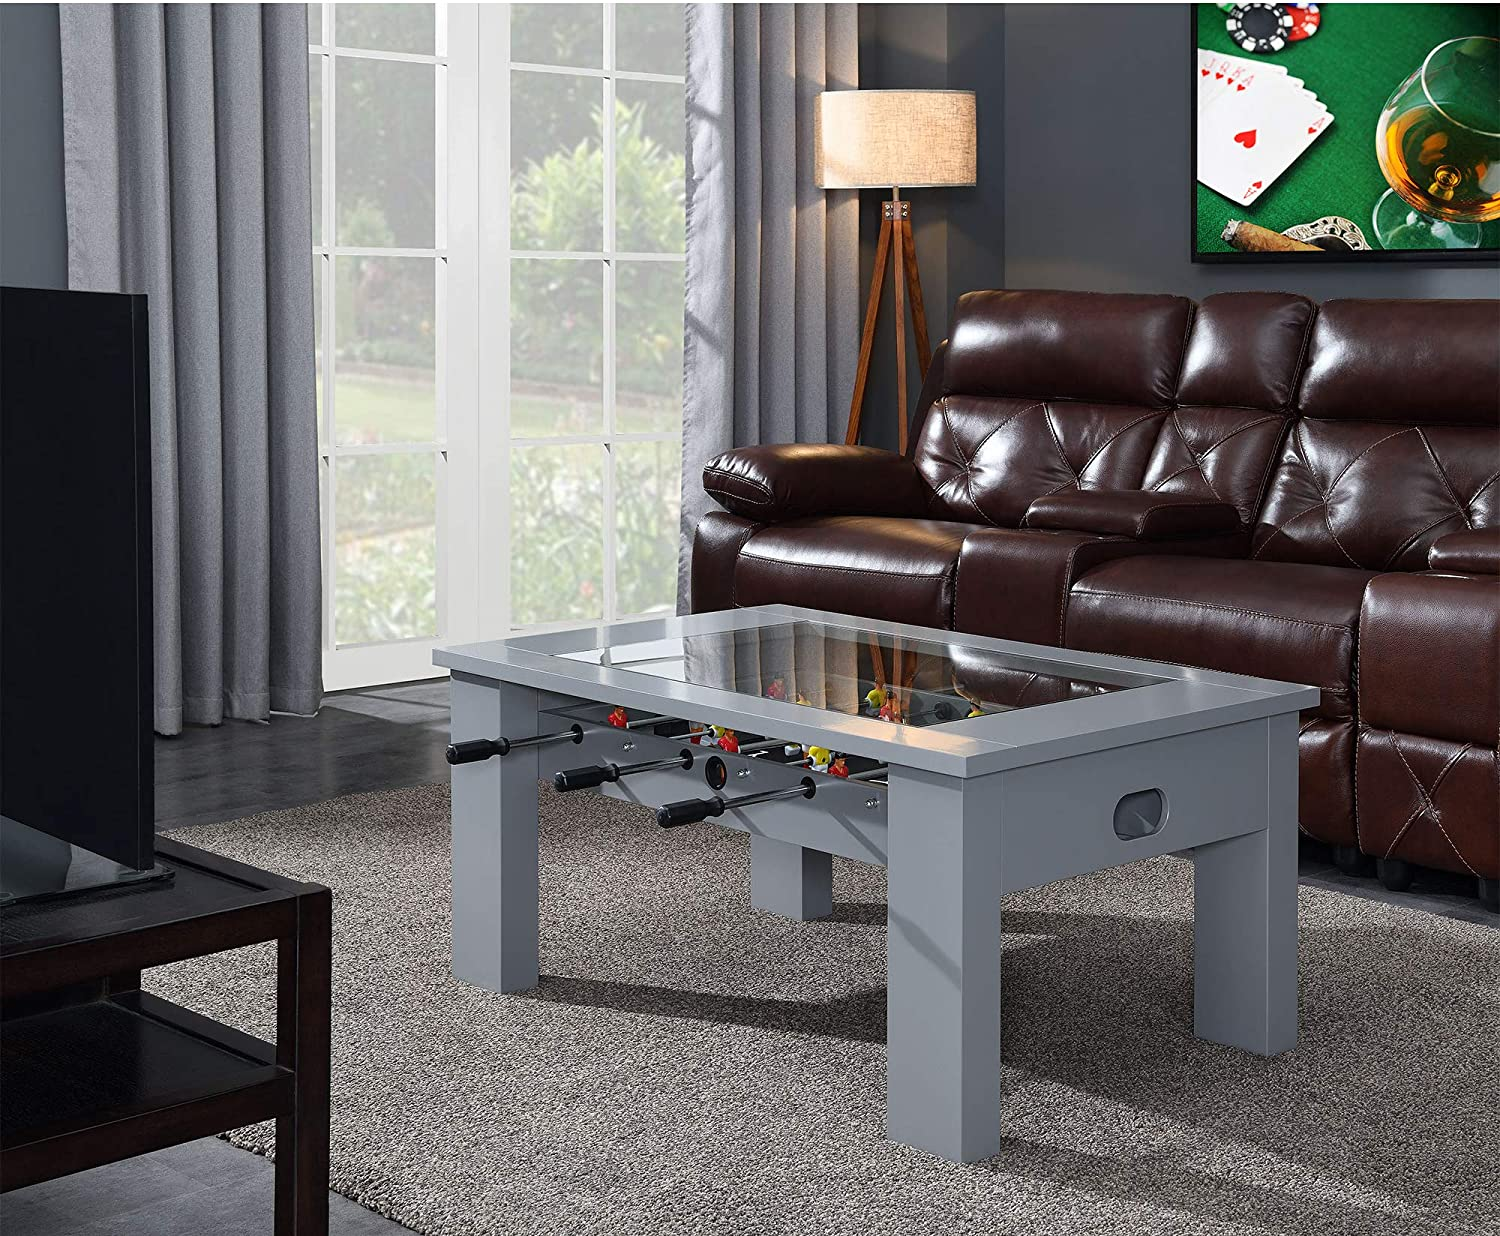 Hanover Foosball Coffee Table with Telescopic Rods and Counterbalanced Players, Grey